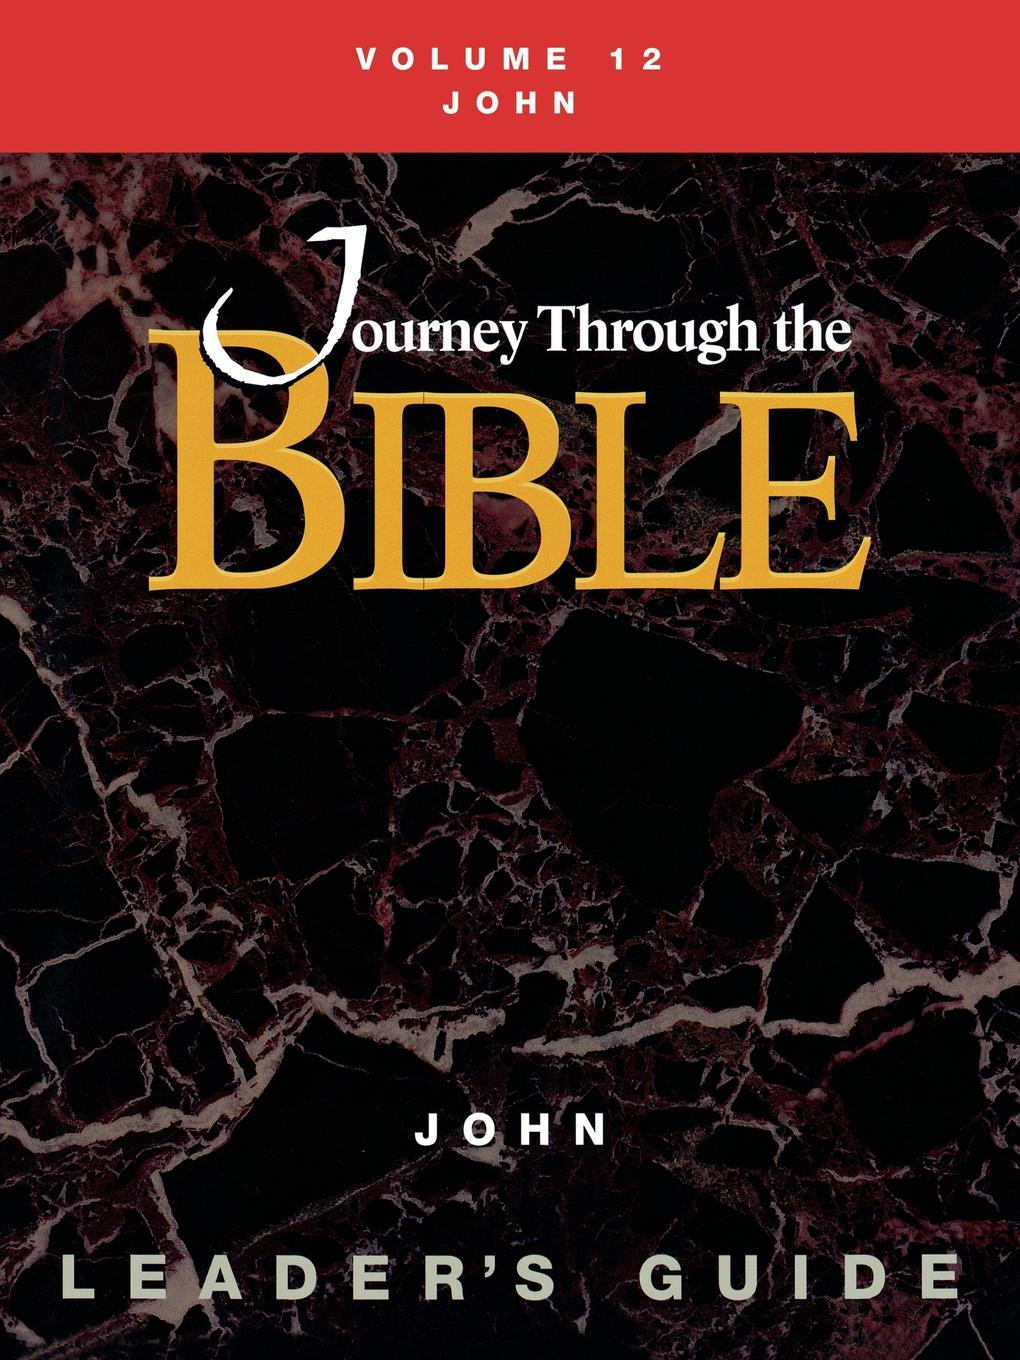 Susan Willhauck Journey Through the Bible Volume 12, John Leaders Guide